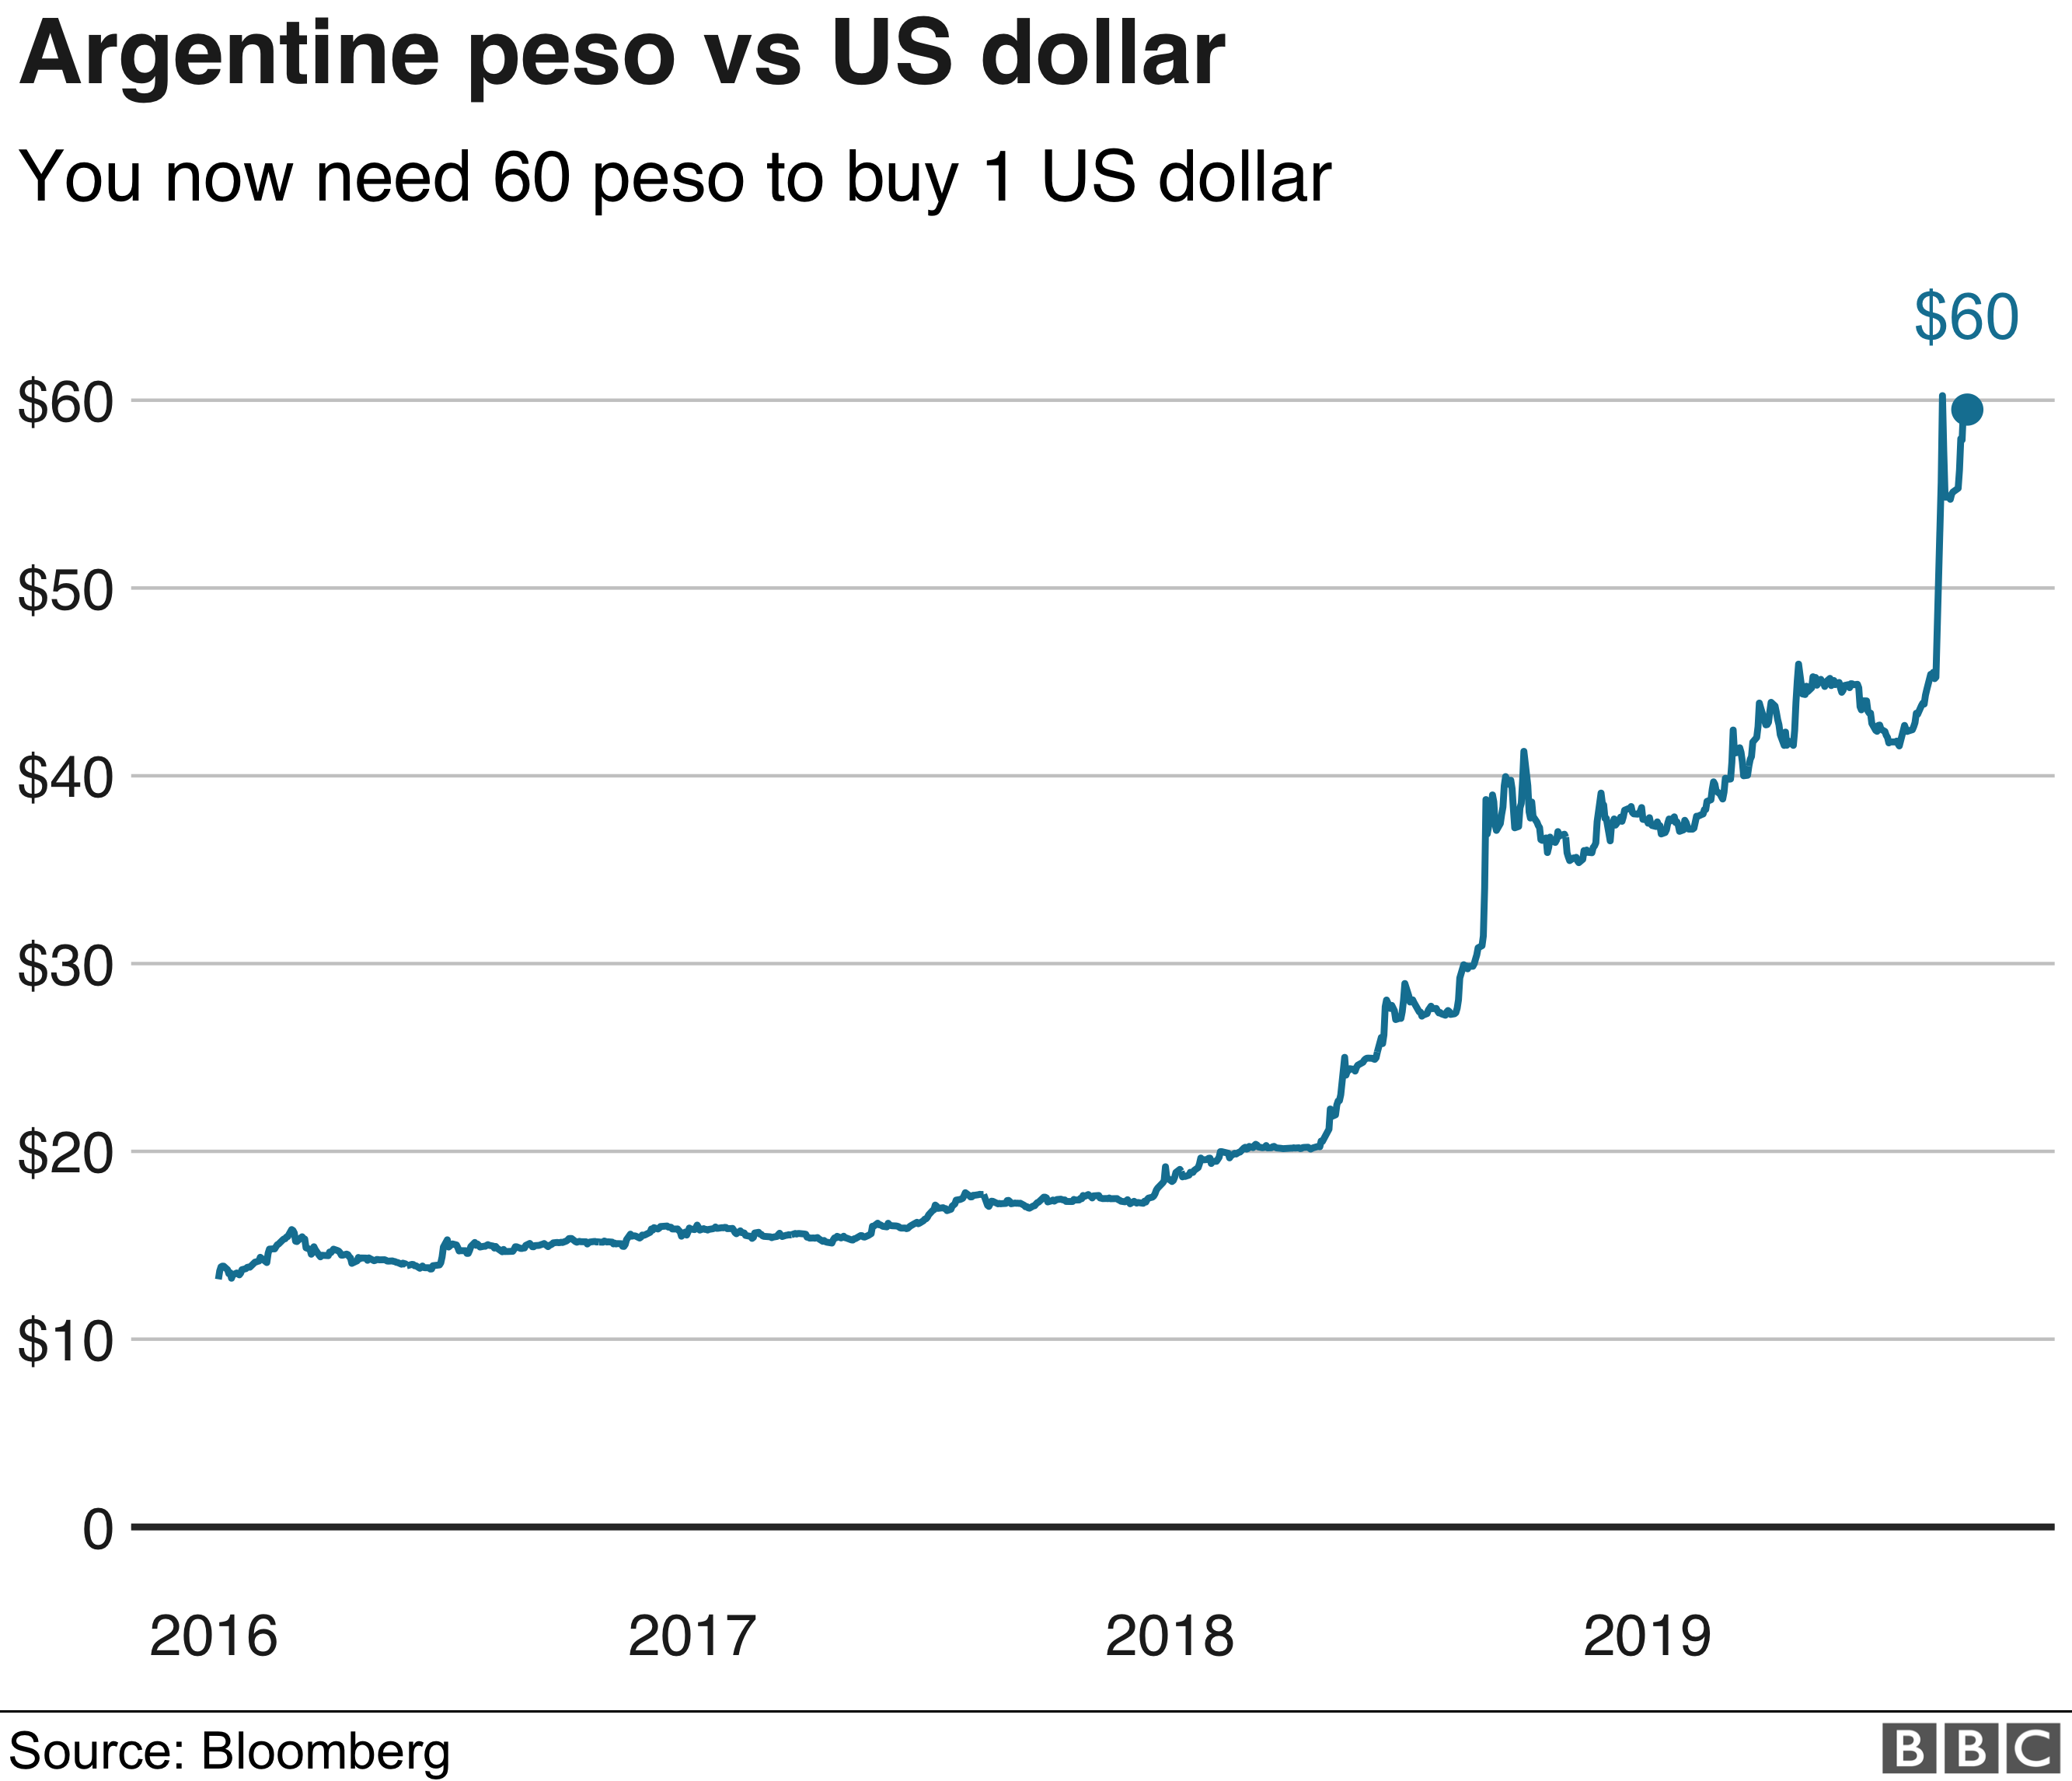 Peso vs US Dollar